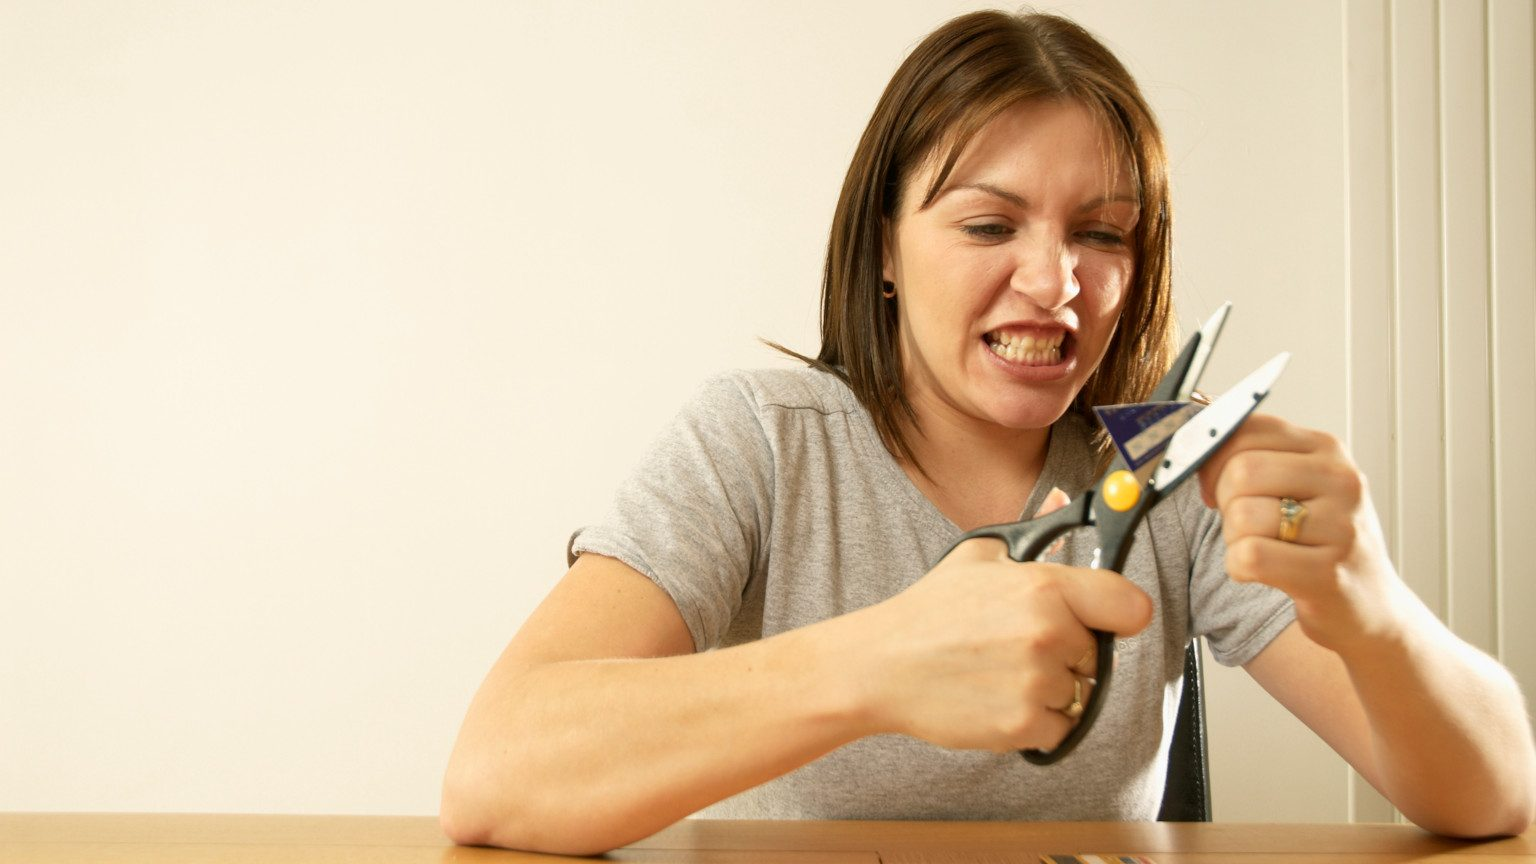 A woman angrily cutting up her credit cards